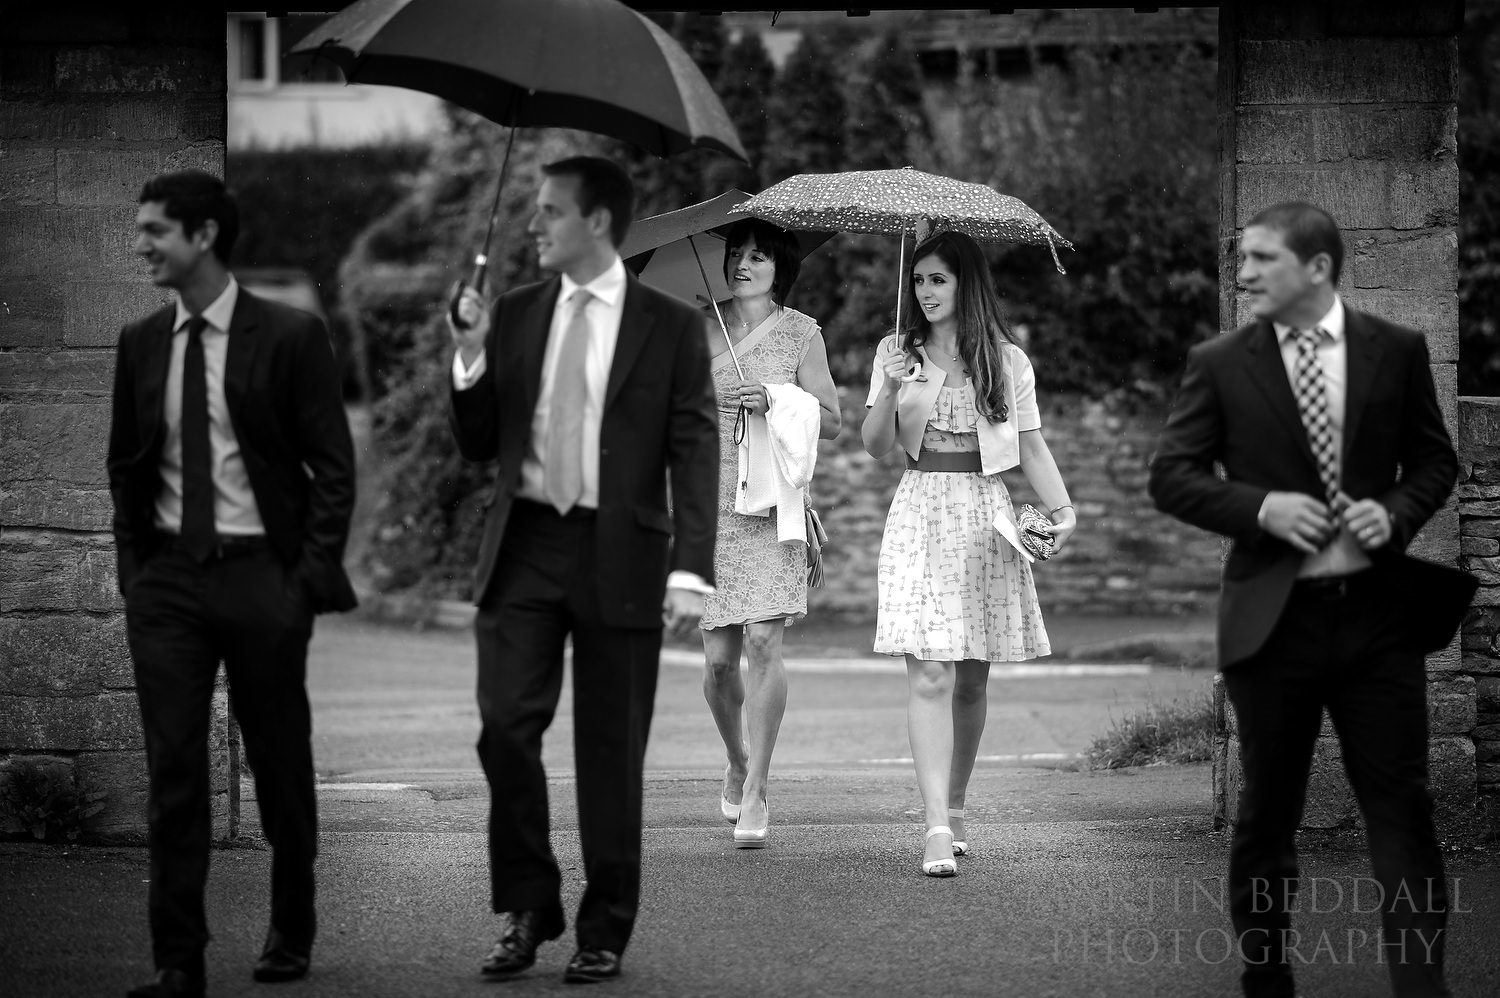 Wedding guests arrive in the drizzle